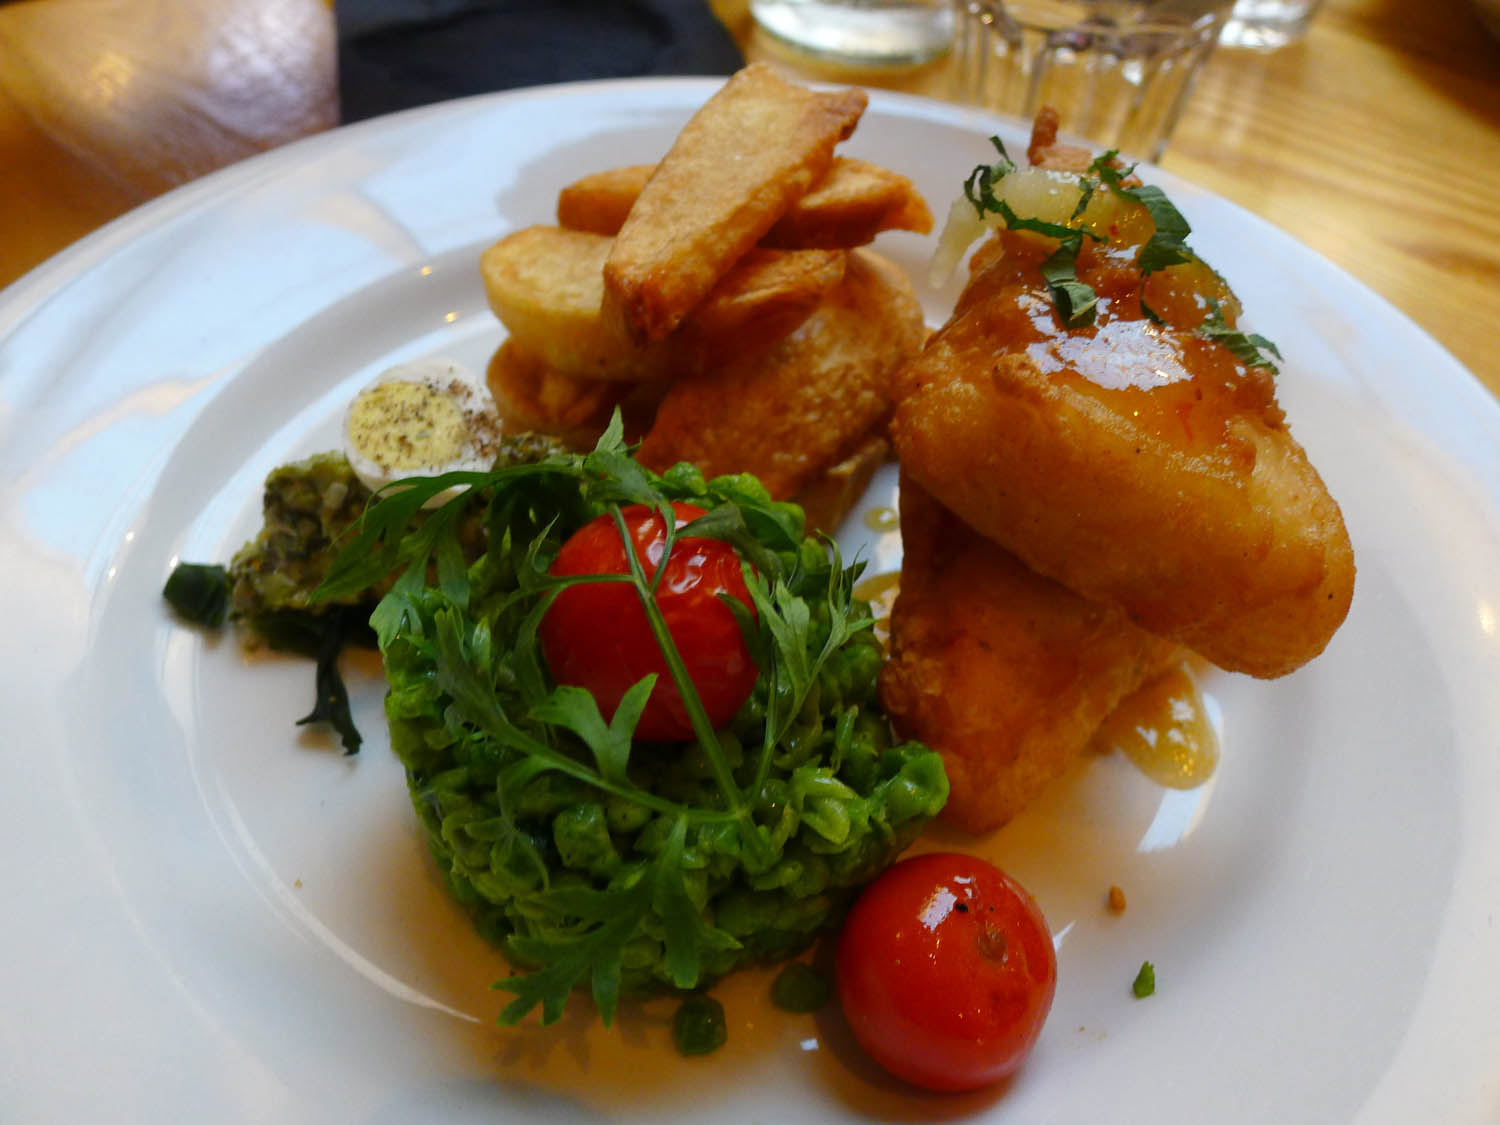 Veggie Fish (Halloumi) and Chips